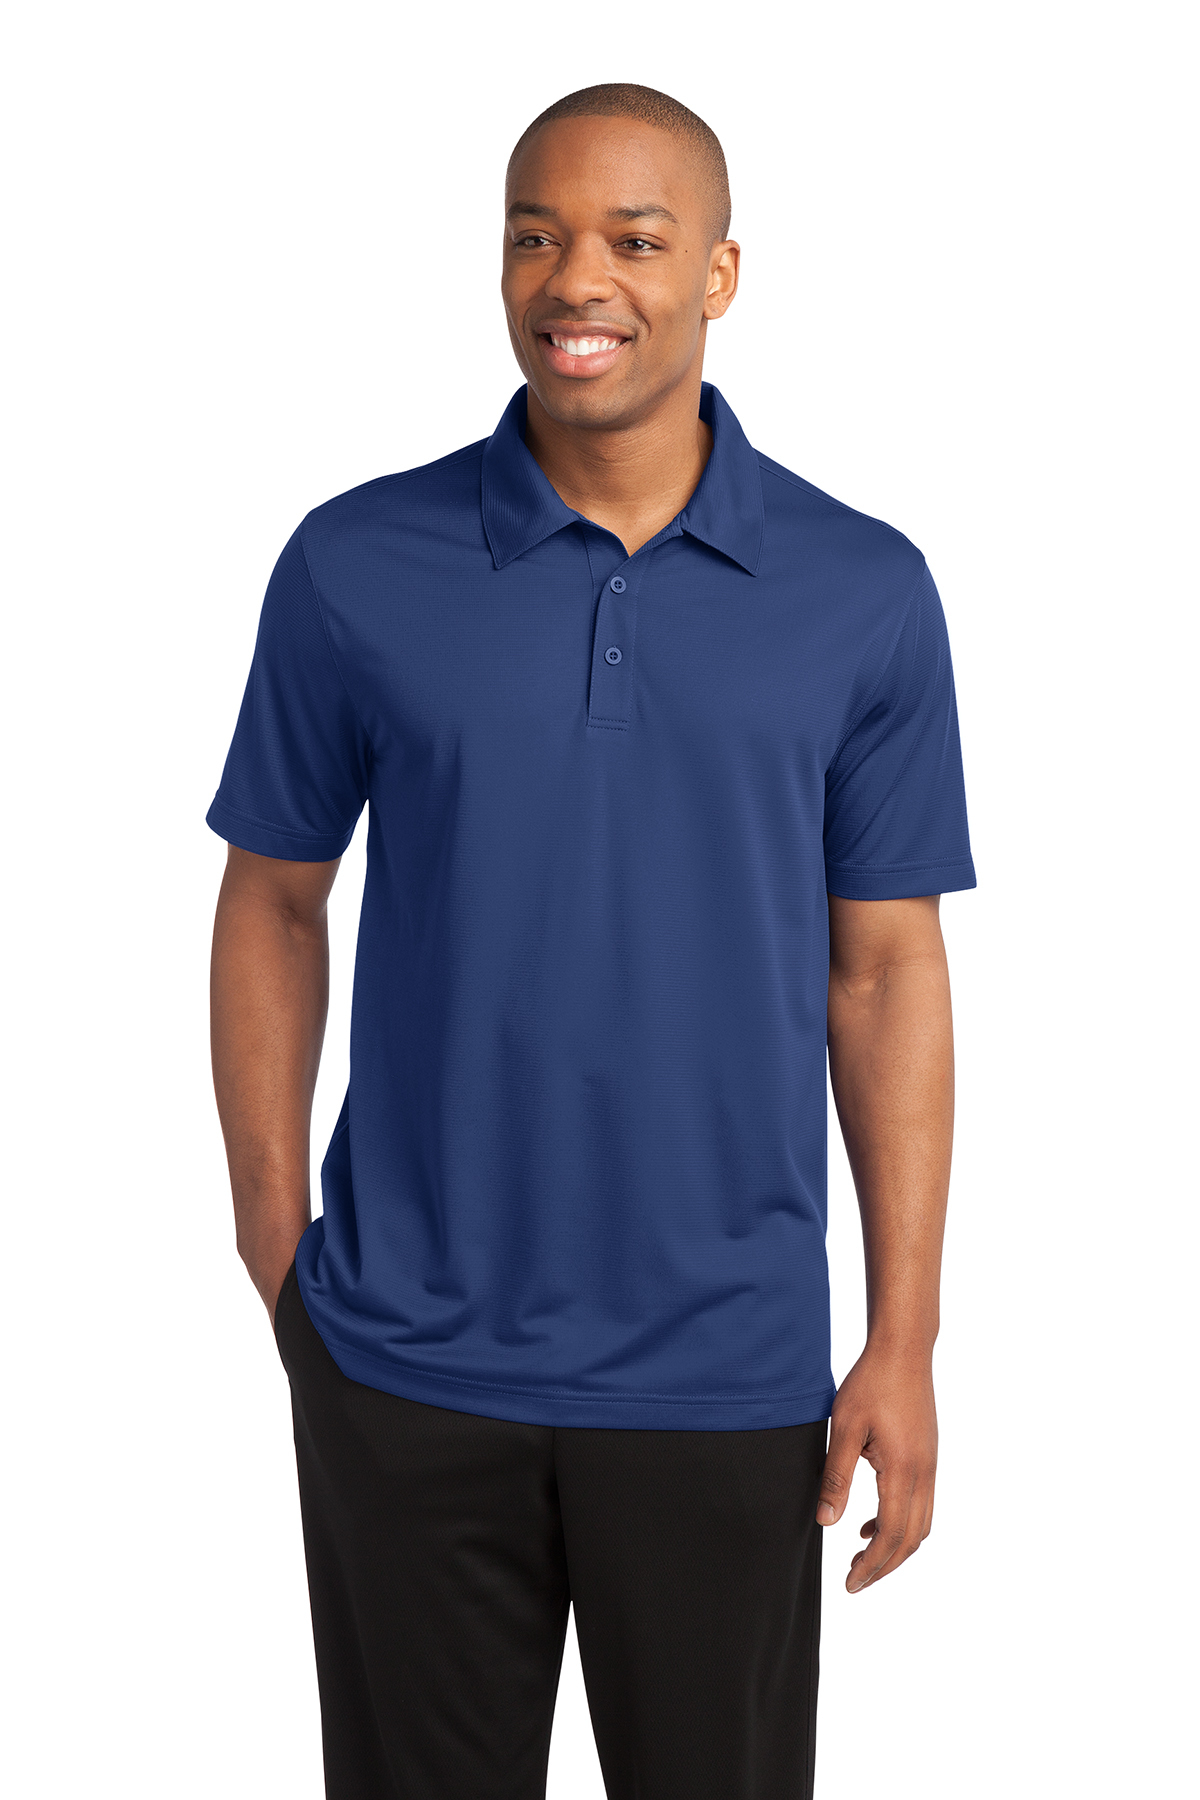 Sport Tek Posicharge Active Textured Polo Performance Polos Knits Sport Tek Embroidered pechauer logo left chest and left sleeve. sport tek posicharge active textured